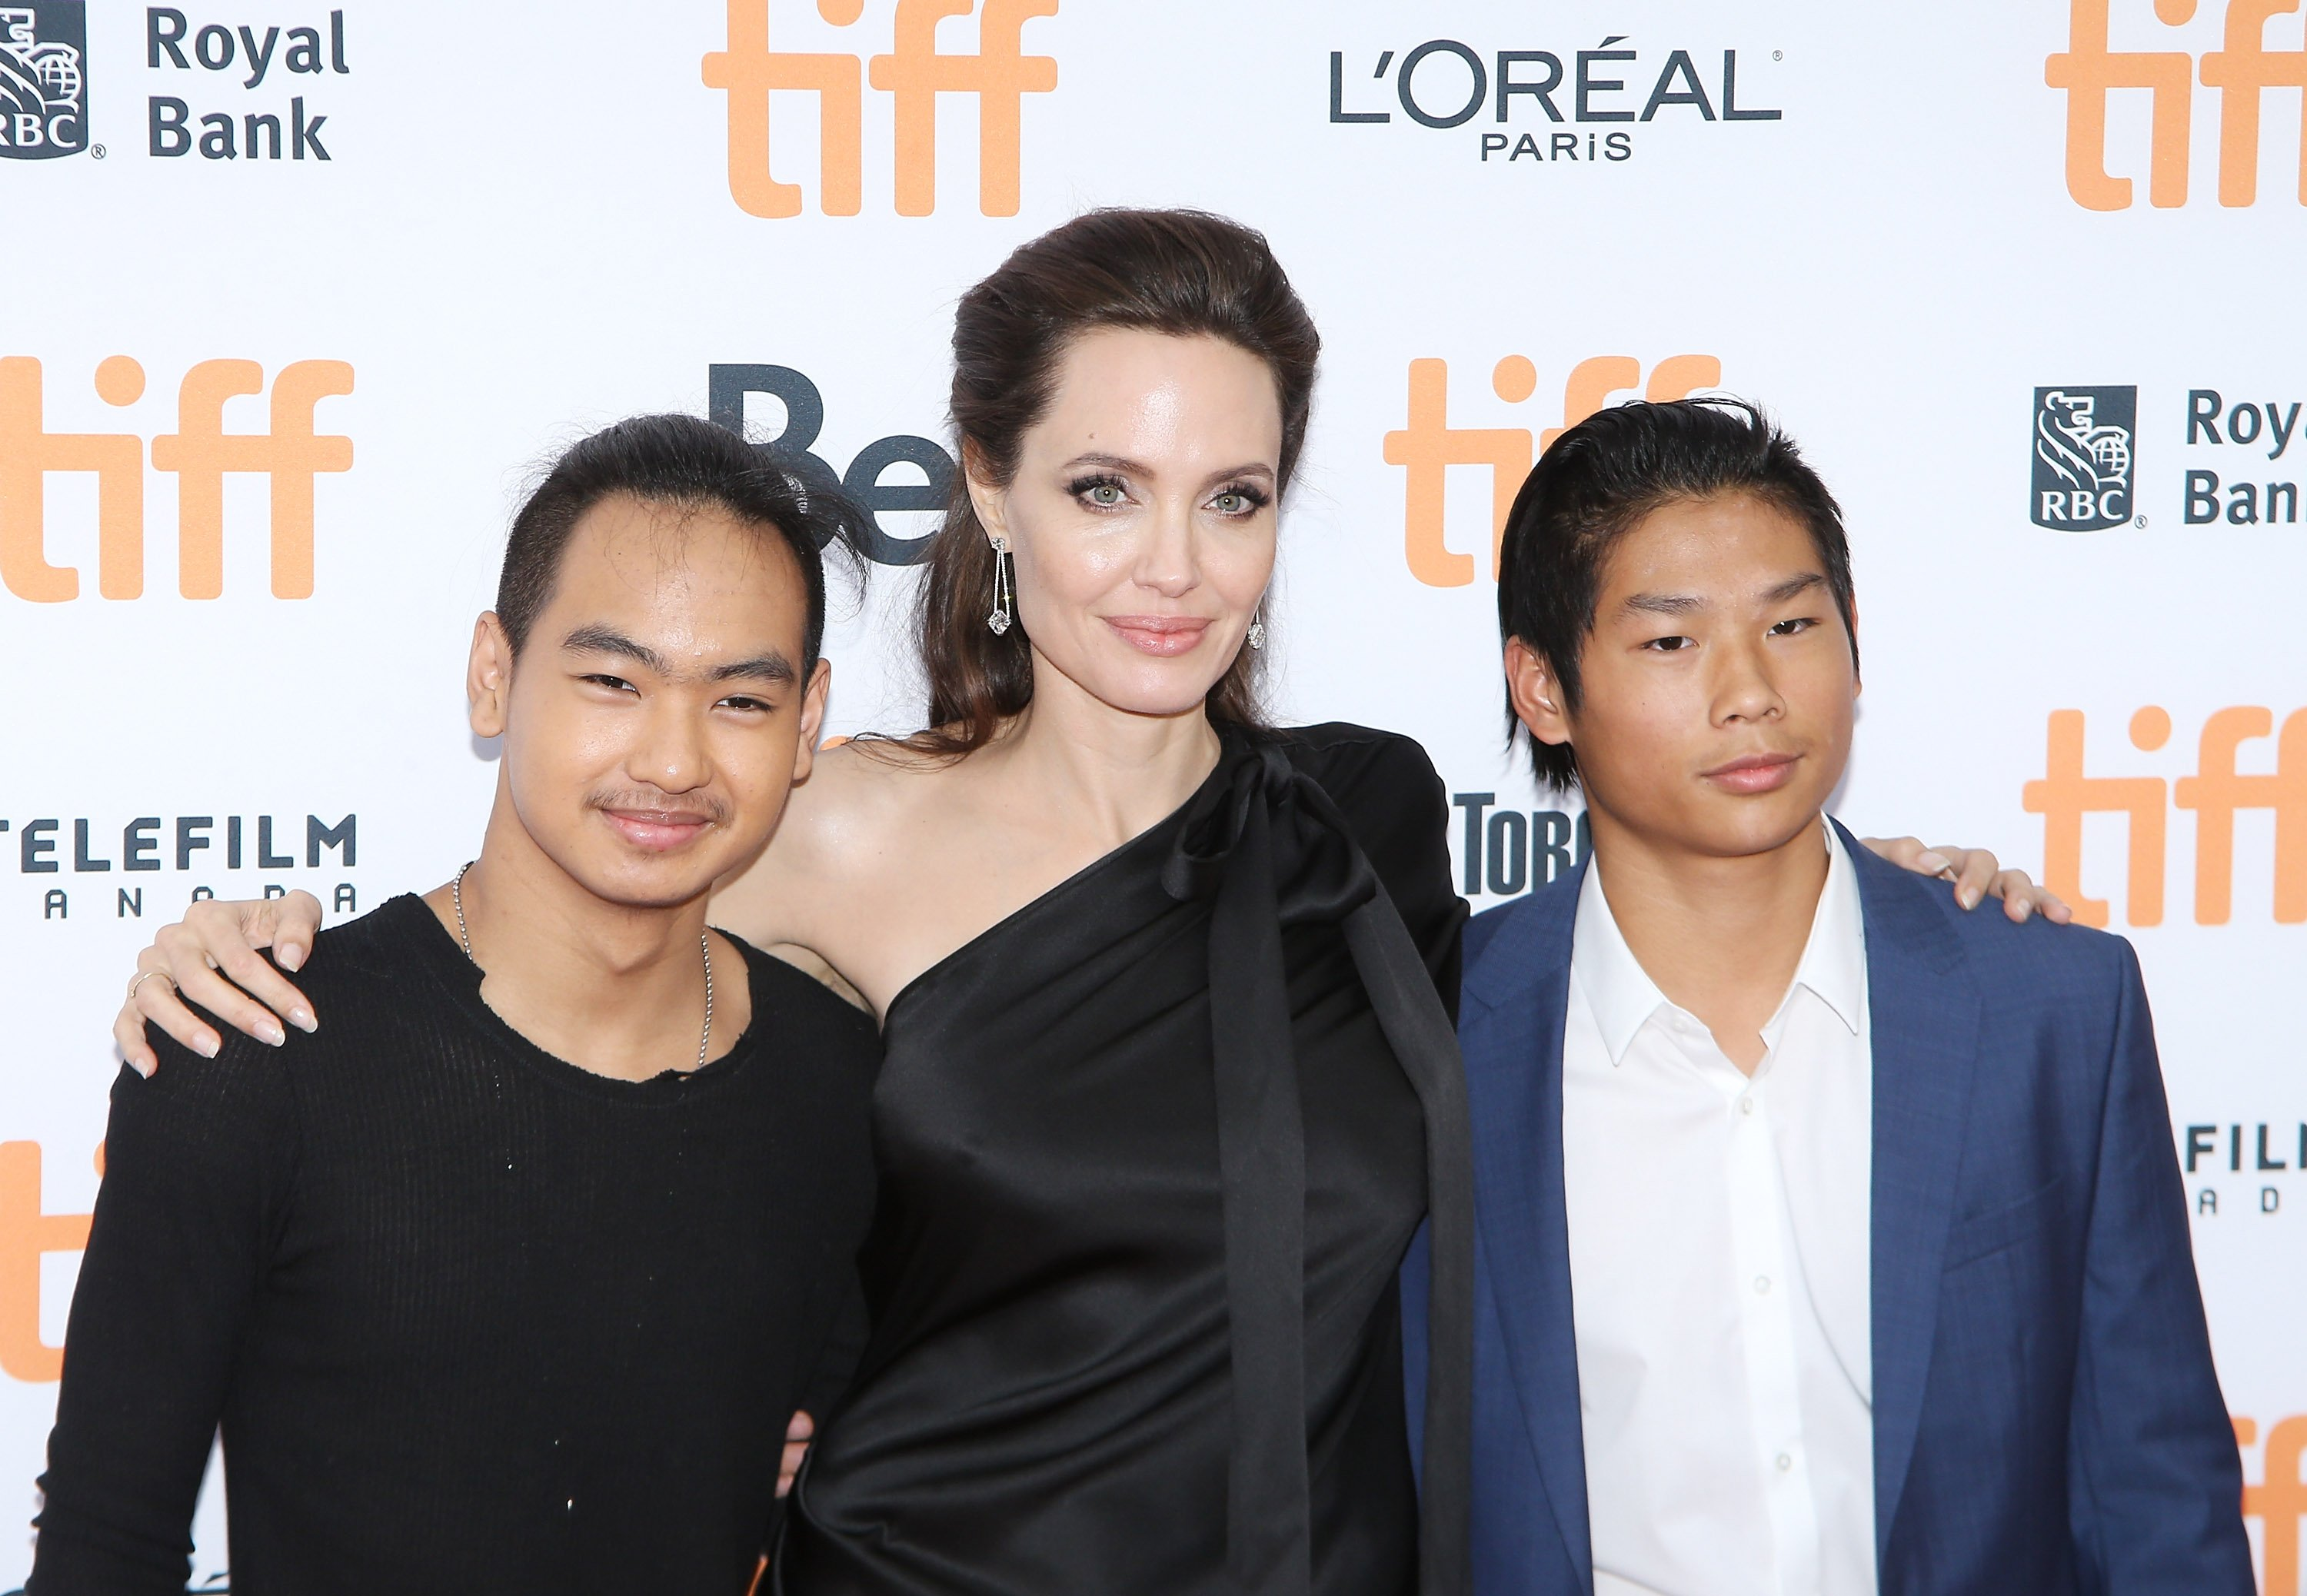 Image Source: Getty Images/Angelina with the two boys